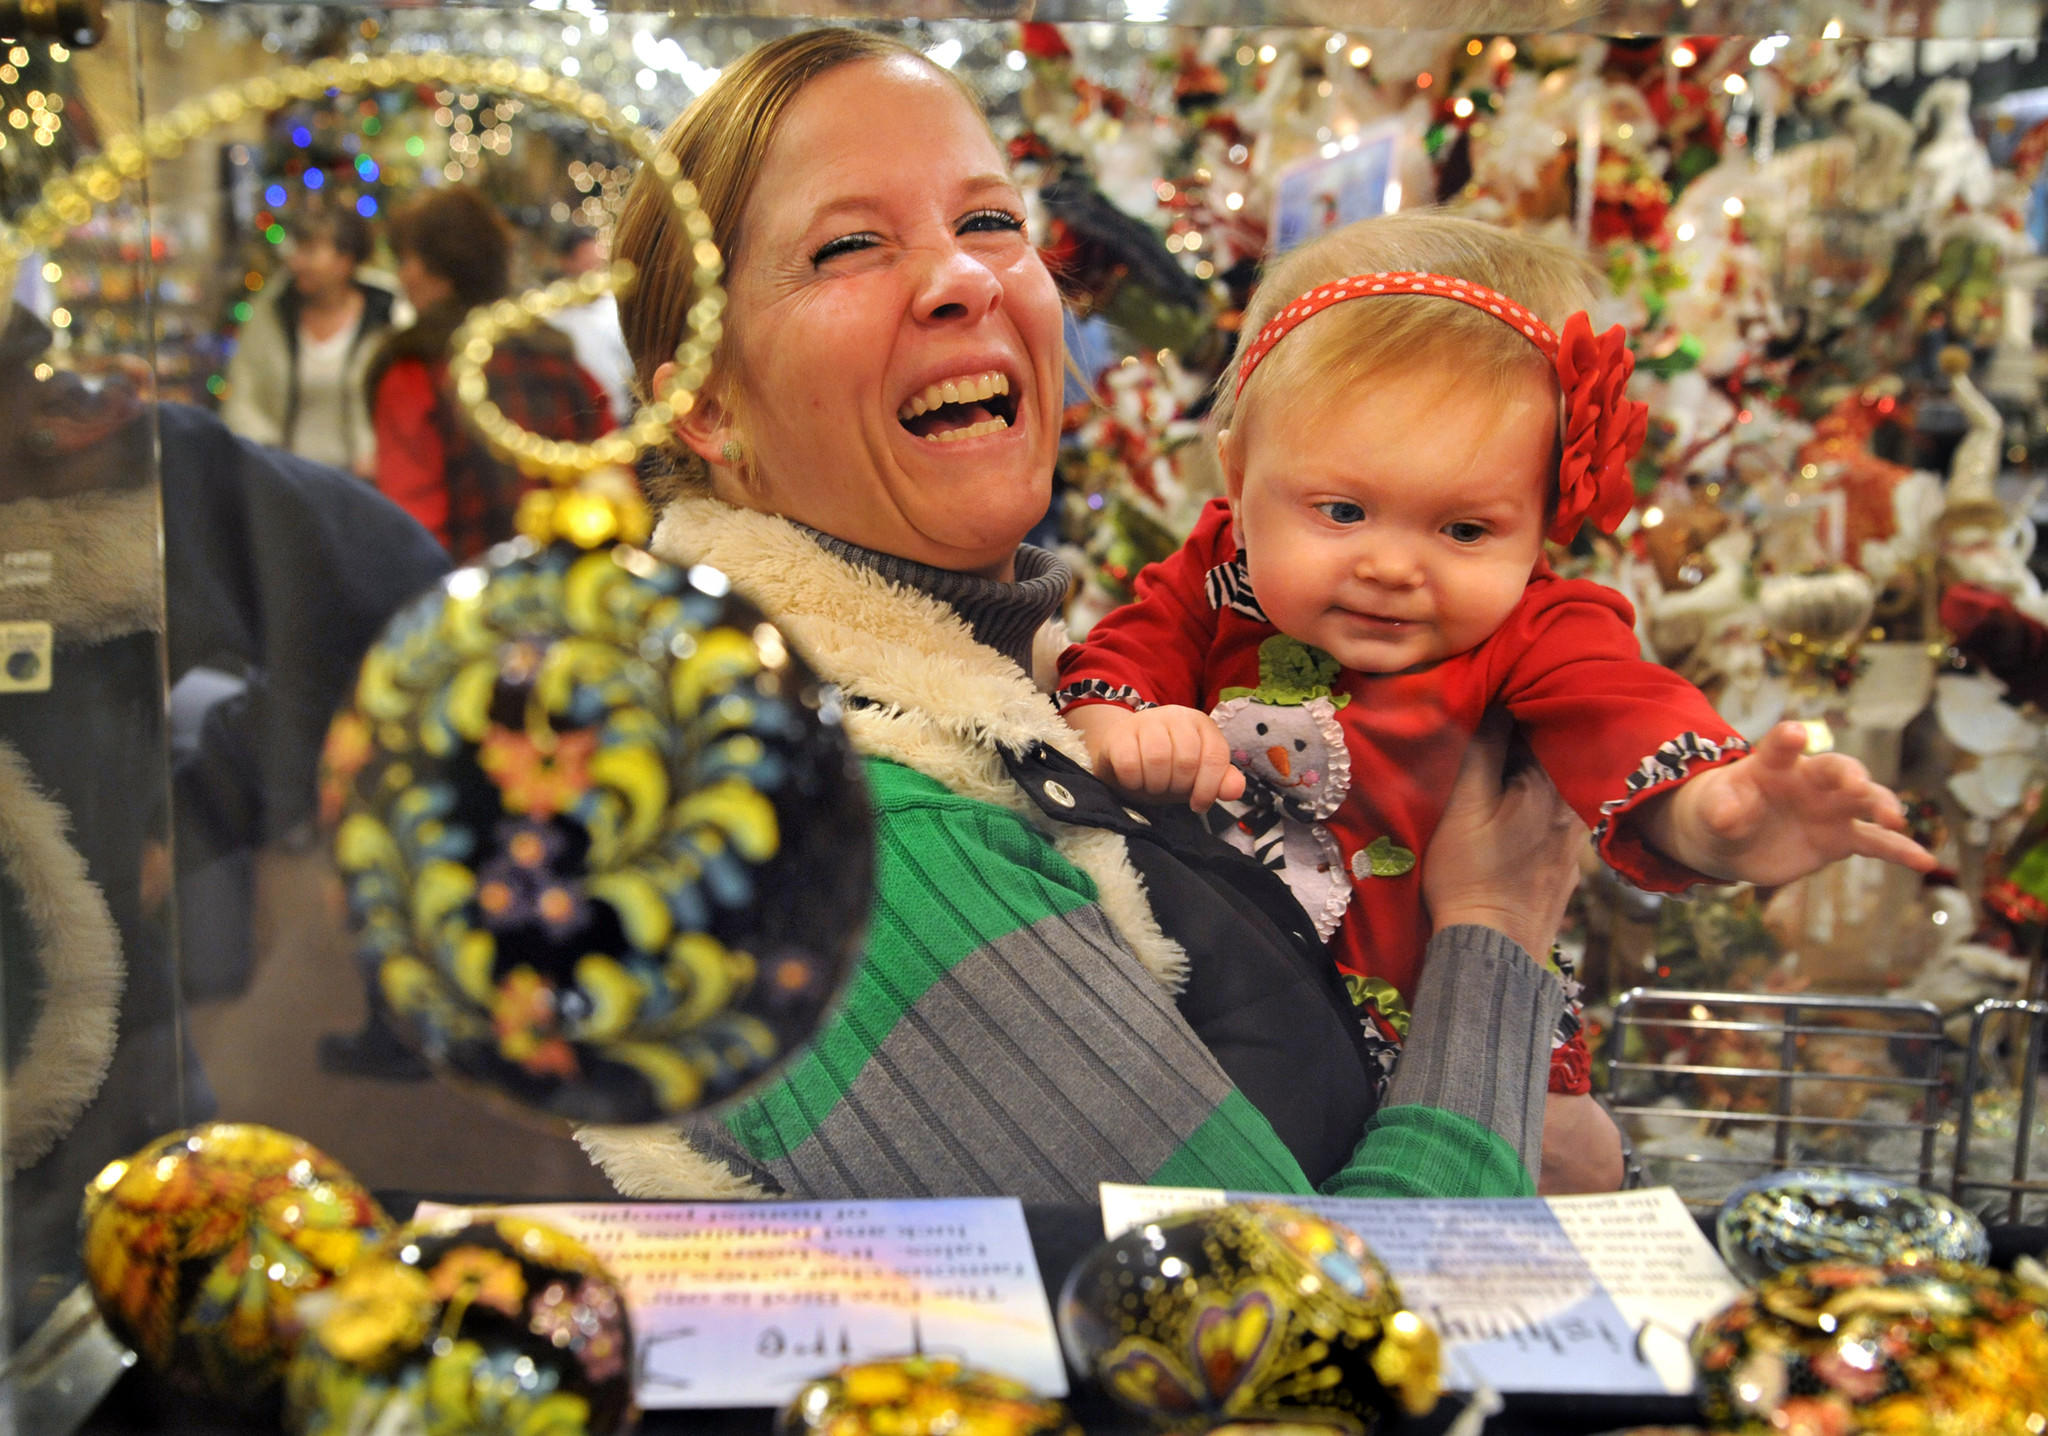 Stacey Huber of Jarretsville has to keep an eye on daughter Brynn Huber, who is interested in touching the delicate hand-painted ceramic ornaments from Uzbekistan, on display at Valley View Farms. Brynn will celebrate her first birthday next week. The large garden store emporium sells trees and every imaginable Christmas decoration and accessory from the second week in October through the holiday season.